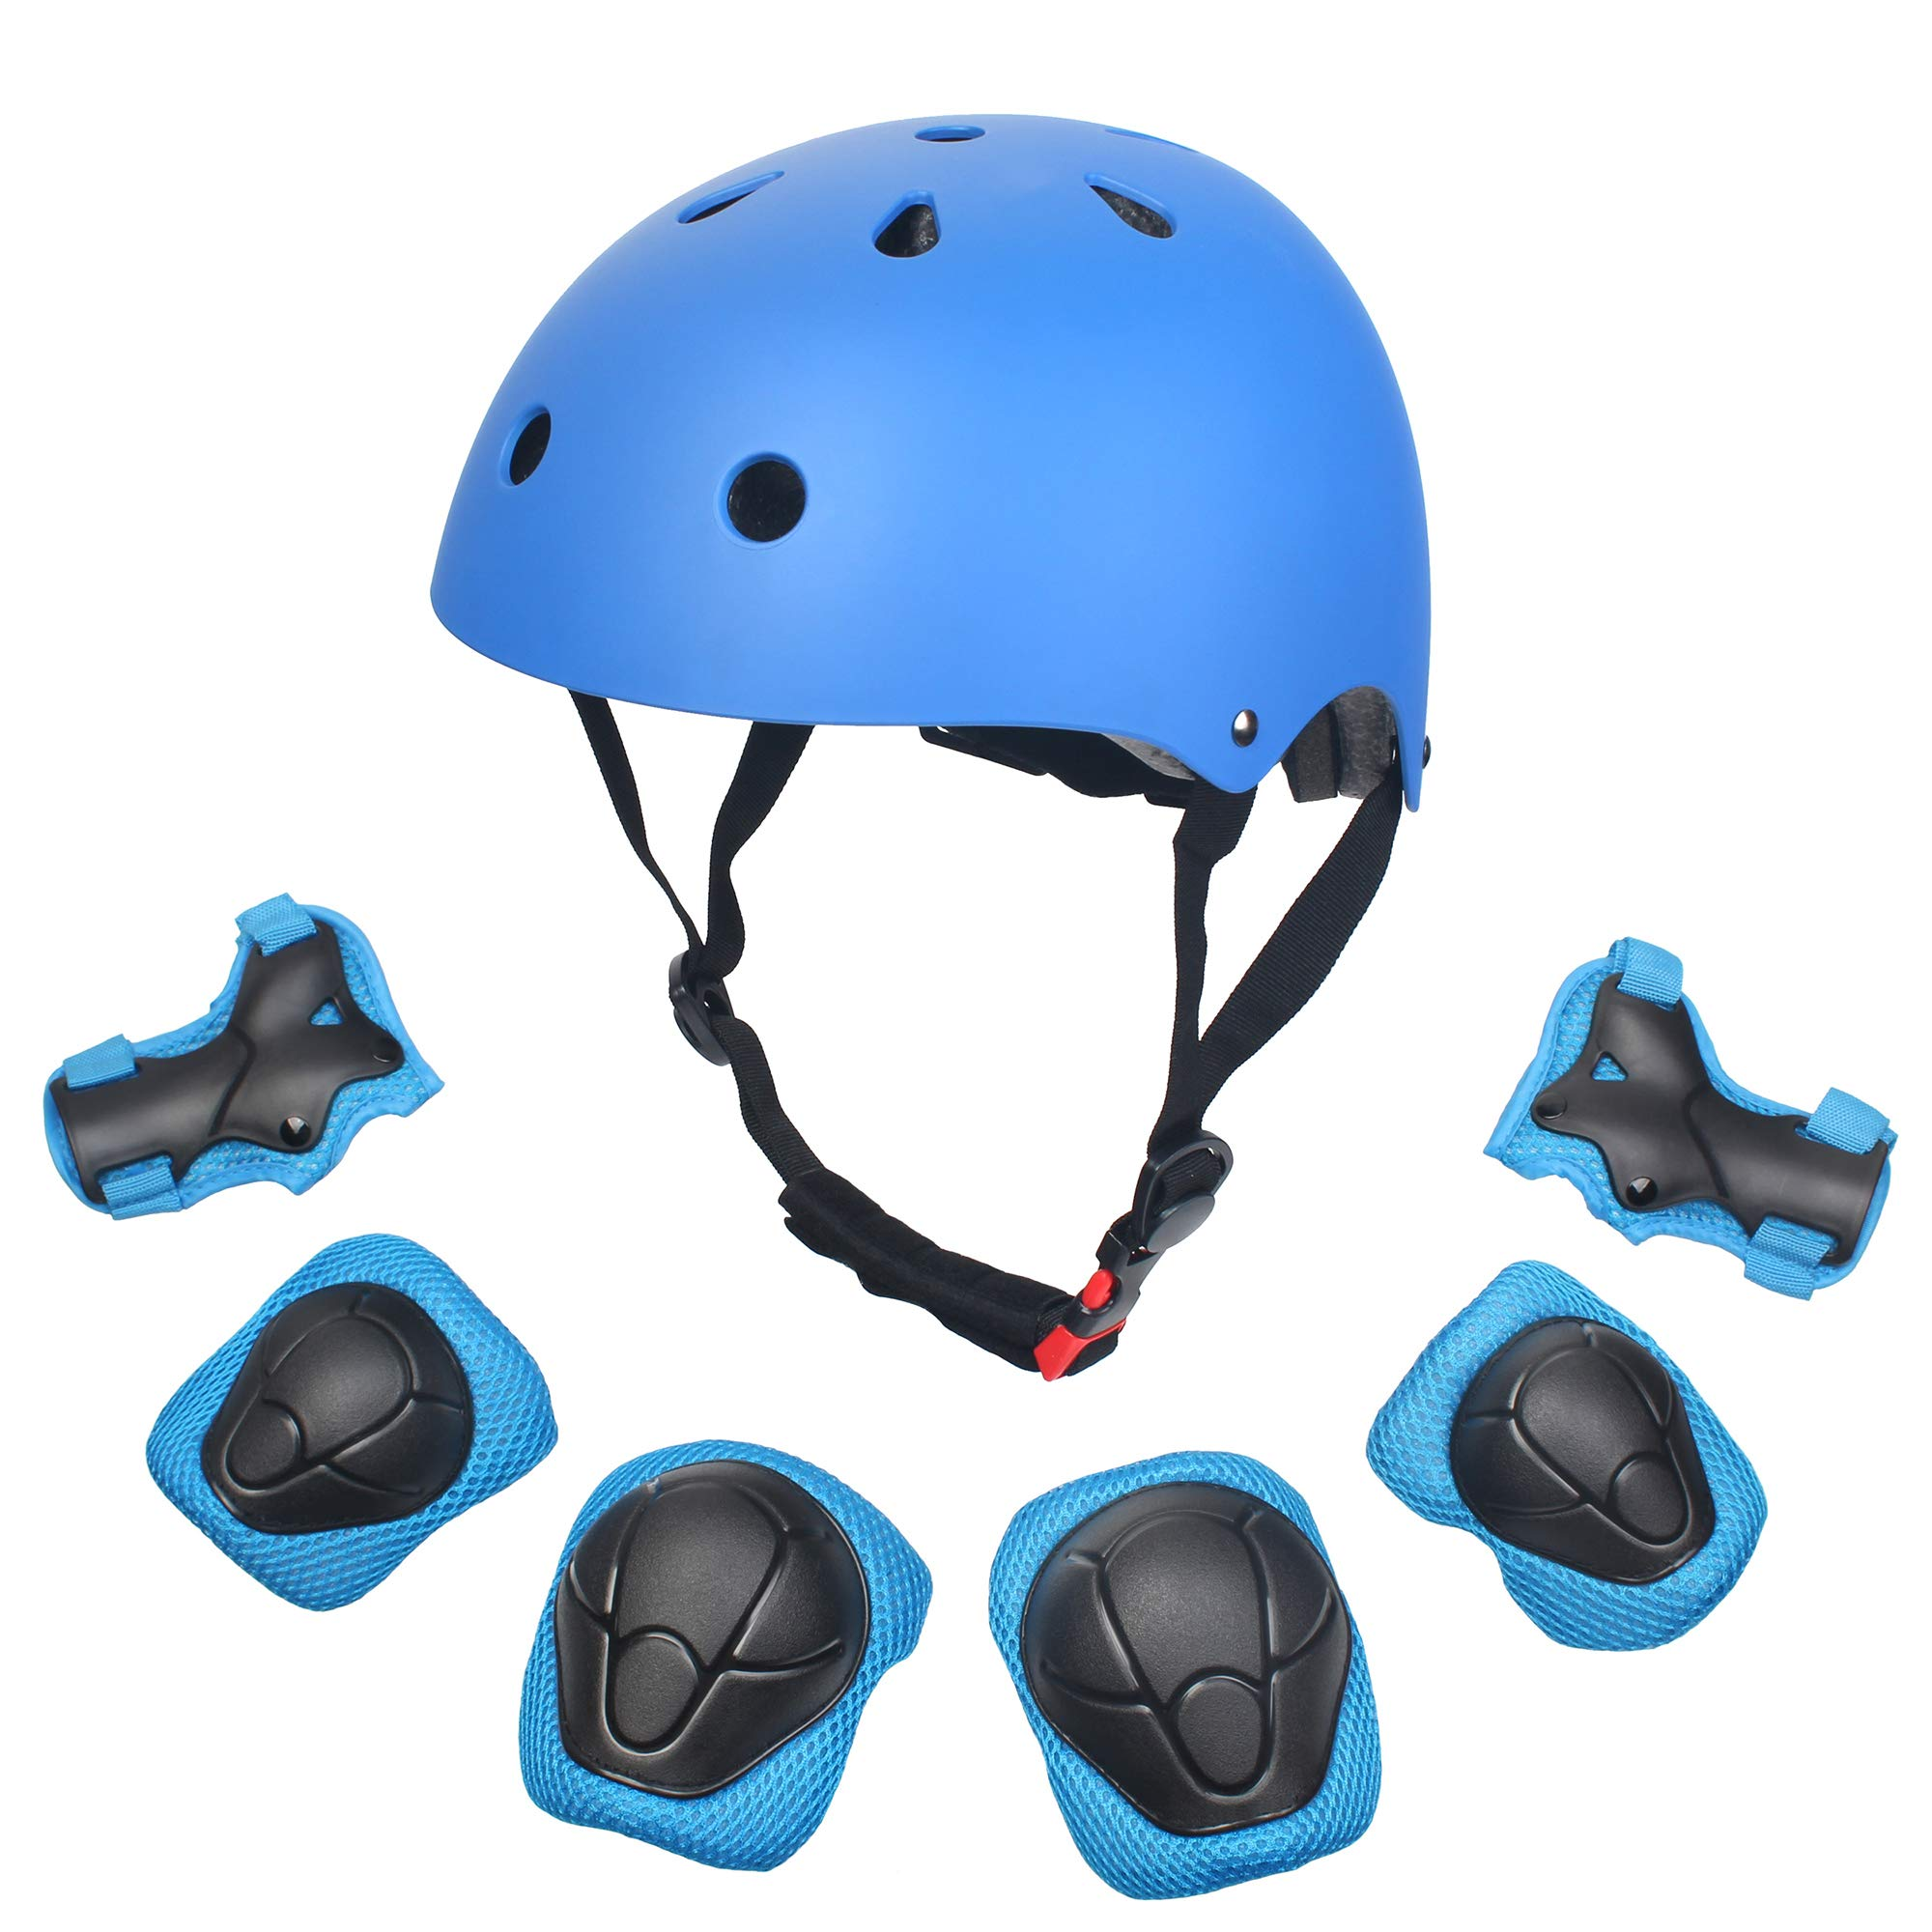 Sarik Kids Outdoor Multi-Sports Protective Gear Set Boys and Girls Helmet Knee Elbow Wrist Safety Pads for Cycling, Rollerblades, Scooter, Skateboard, Bicycle, Rollerblades(3-10 Years Old) (Blue)